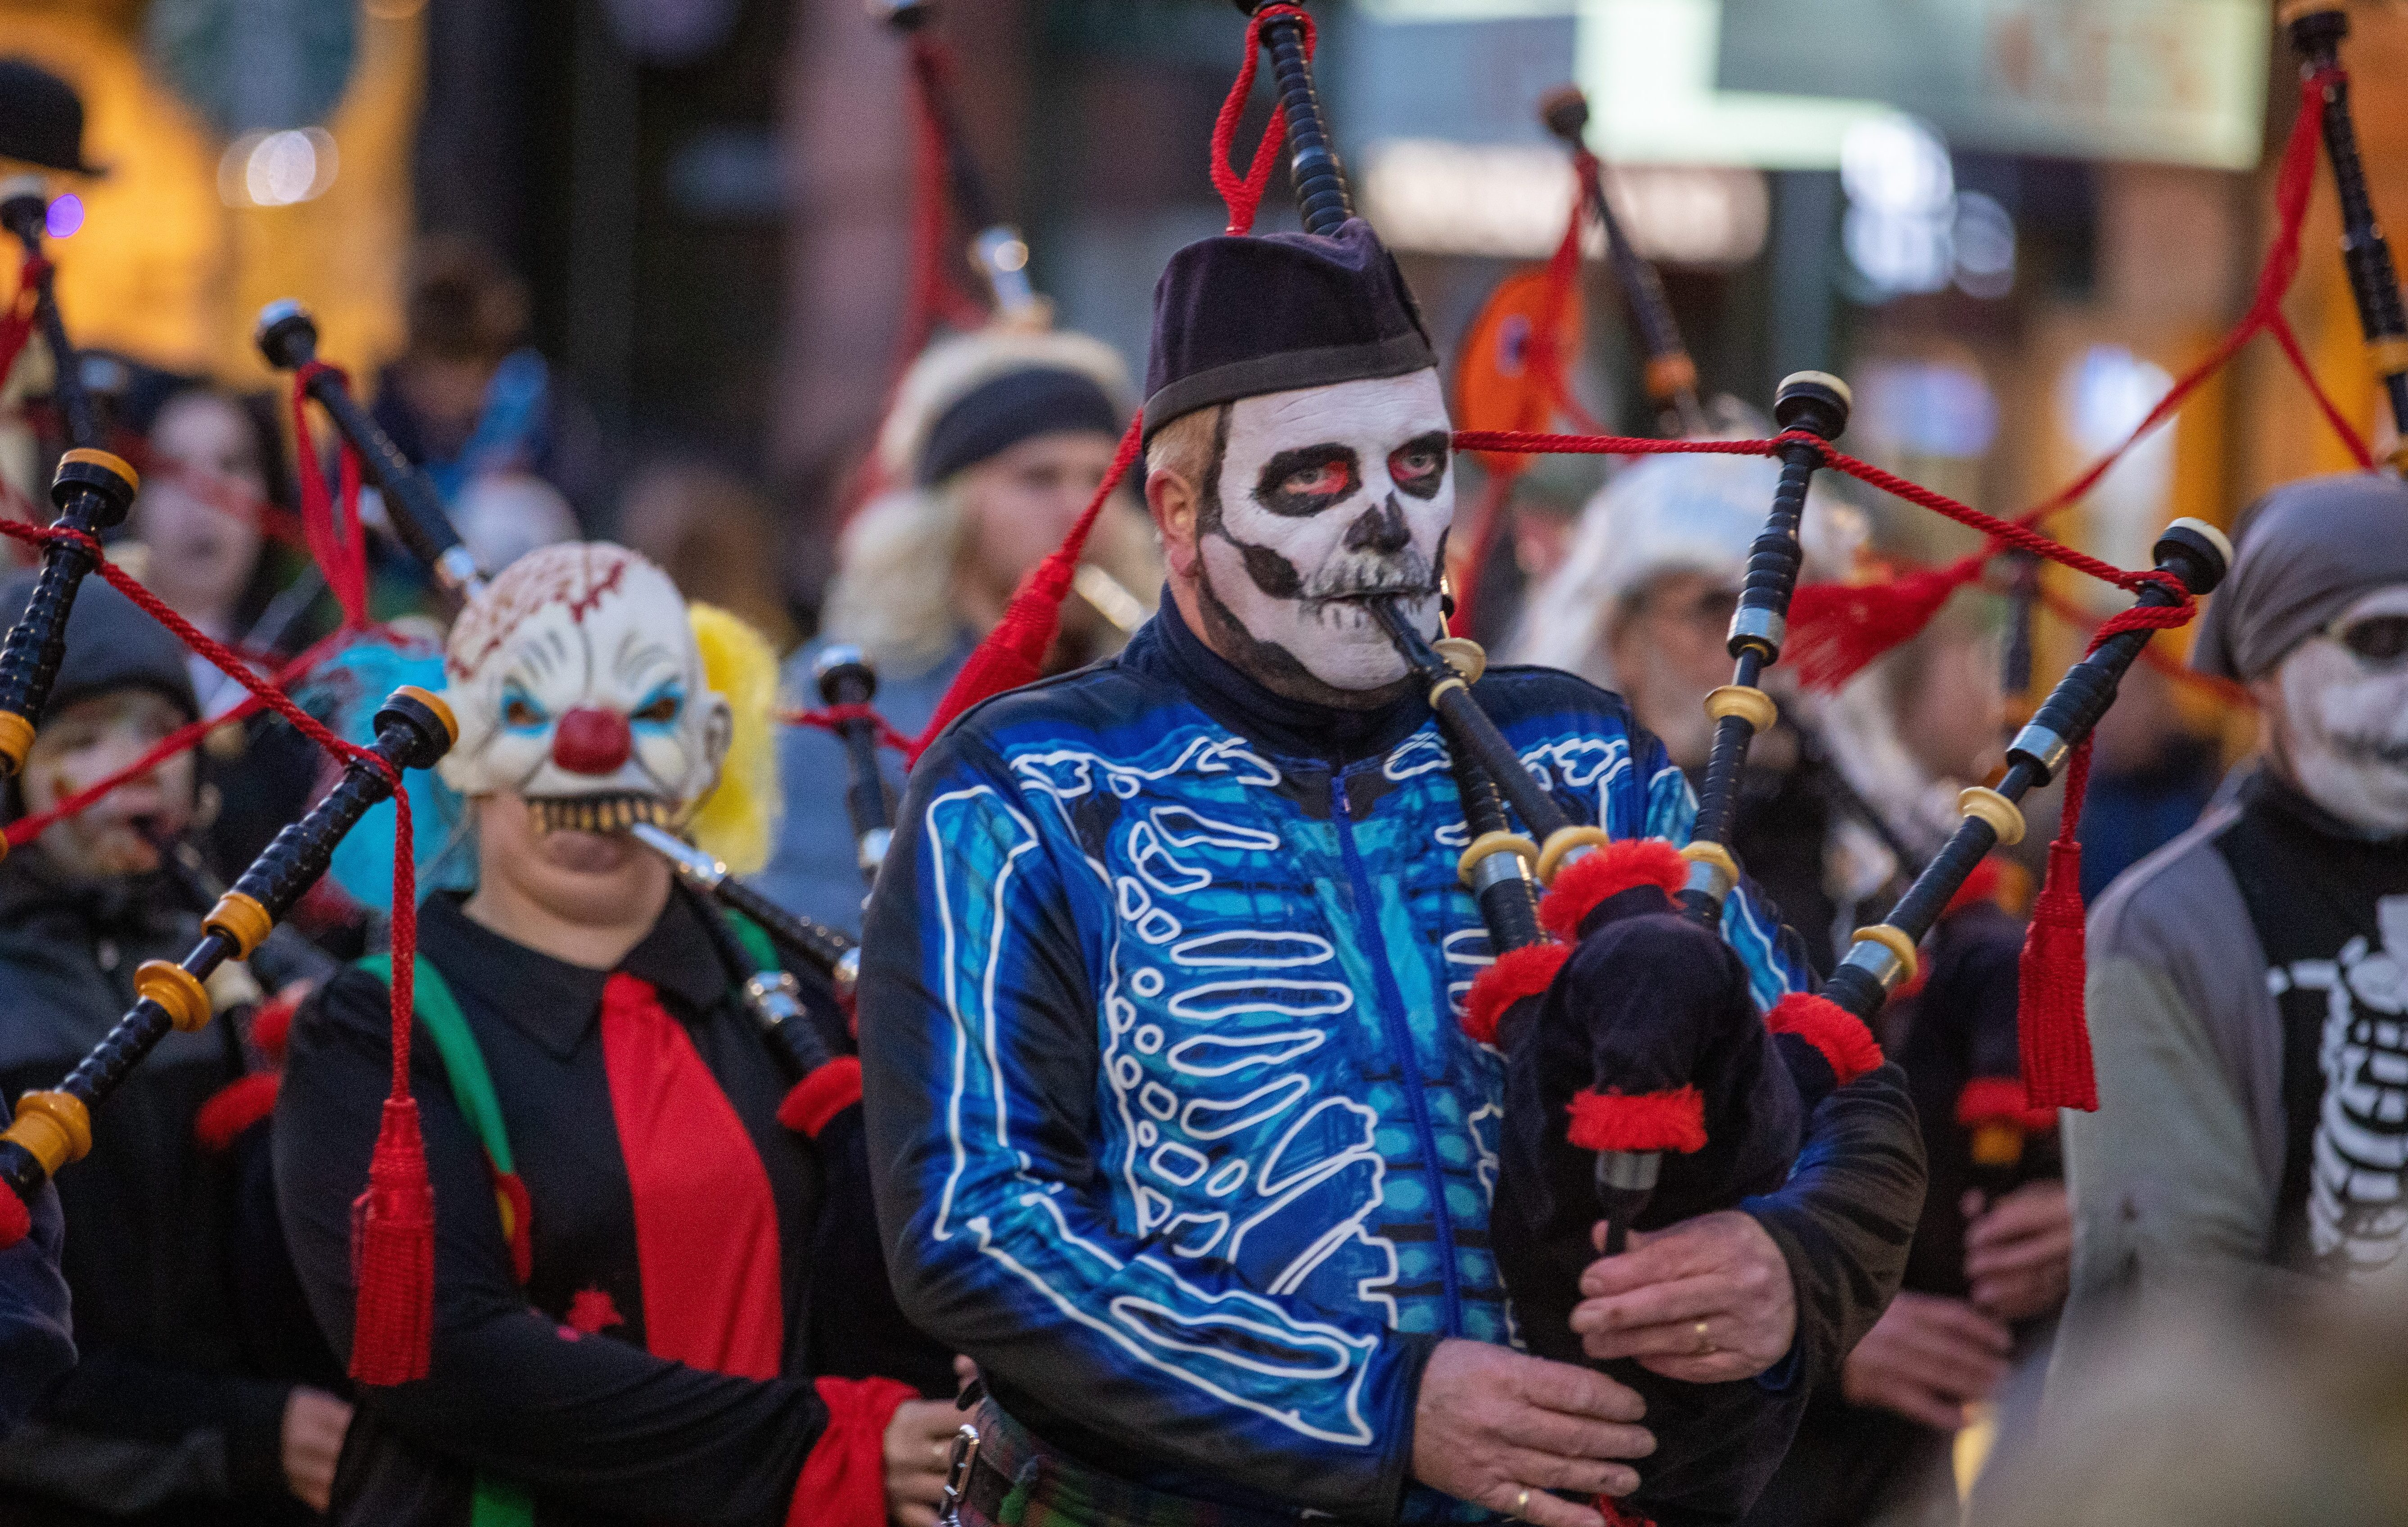 The Perth & District Pipe band got in on the act during the Massive Halloween party in Perth city centre including parade and live music.